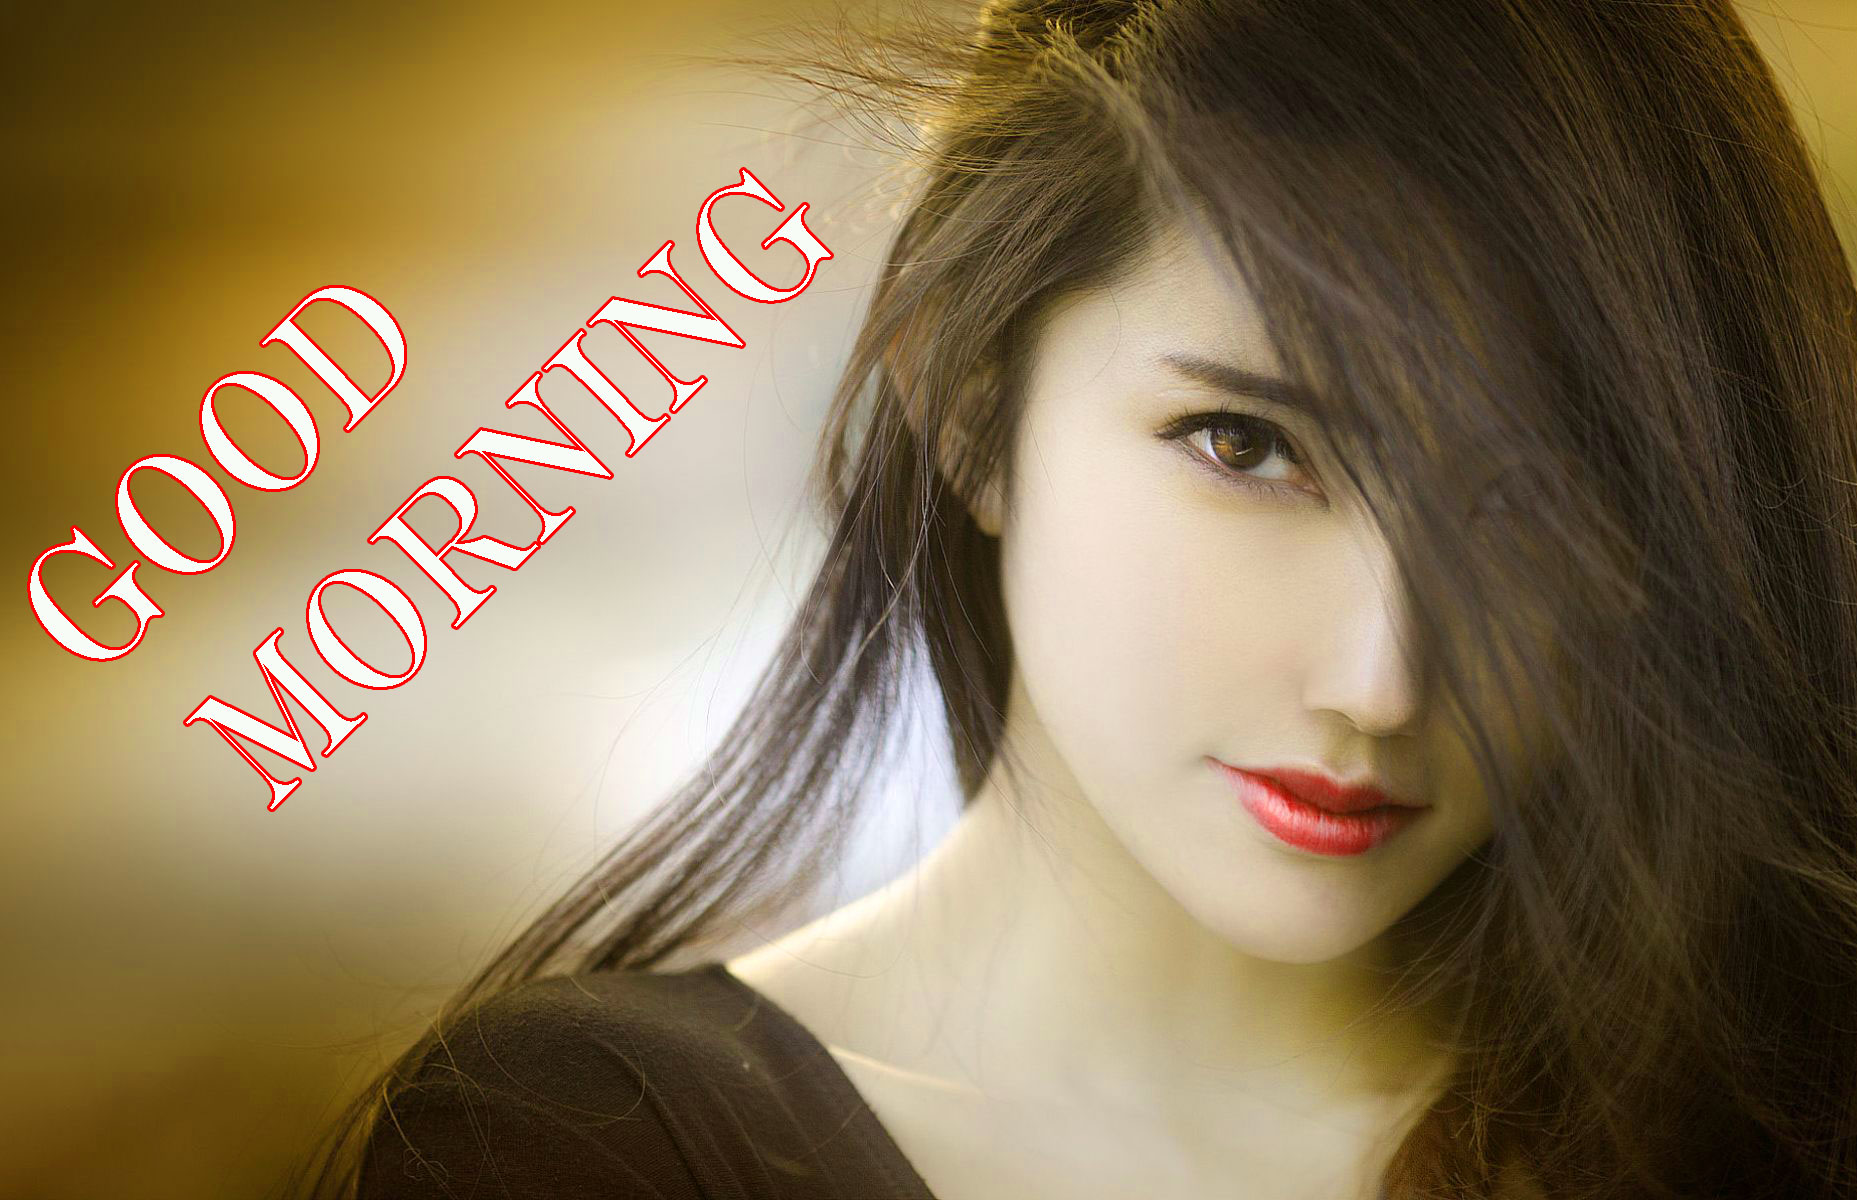 GOOD MORNING WITH BEAUTIFUL DESI CUTE STYLISH IMAGES WALLPAPER PICTURES DOWNLOAD